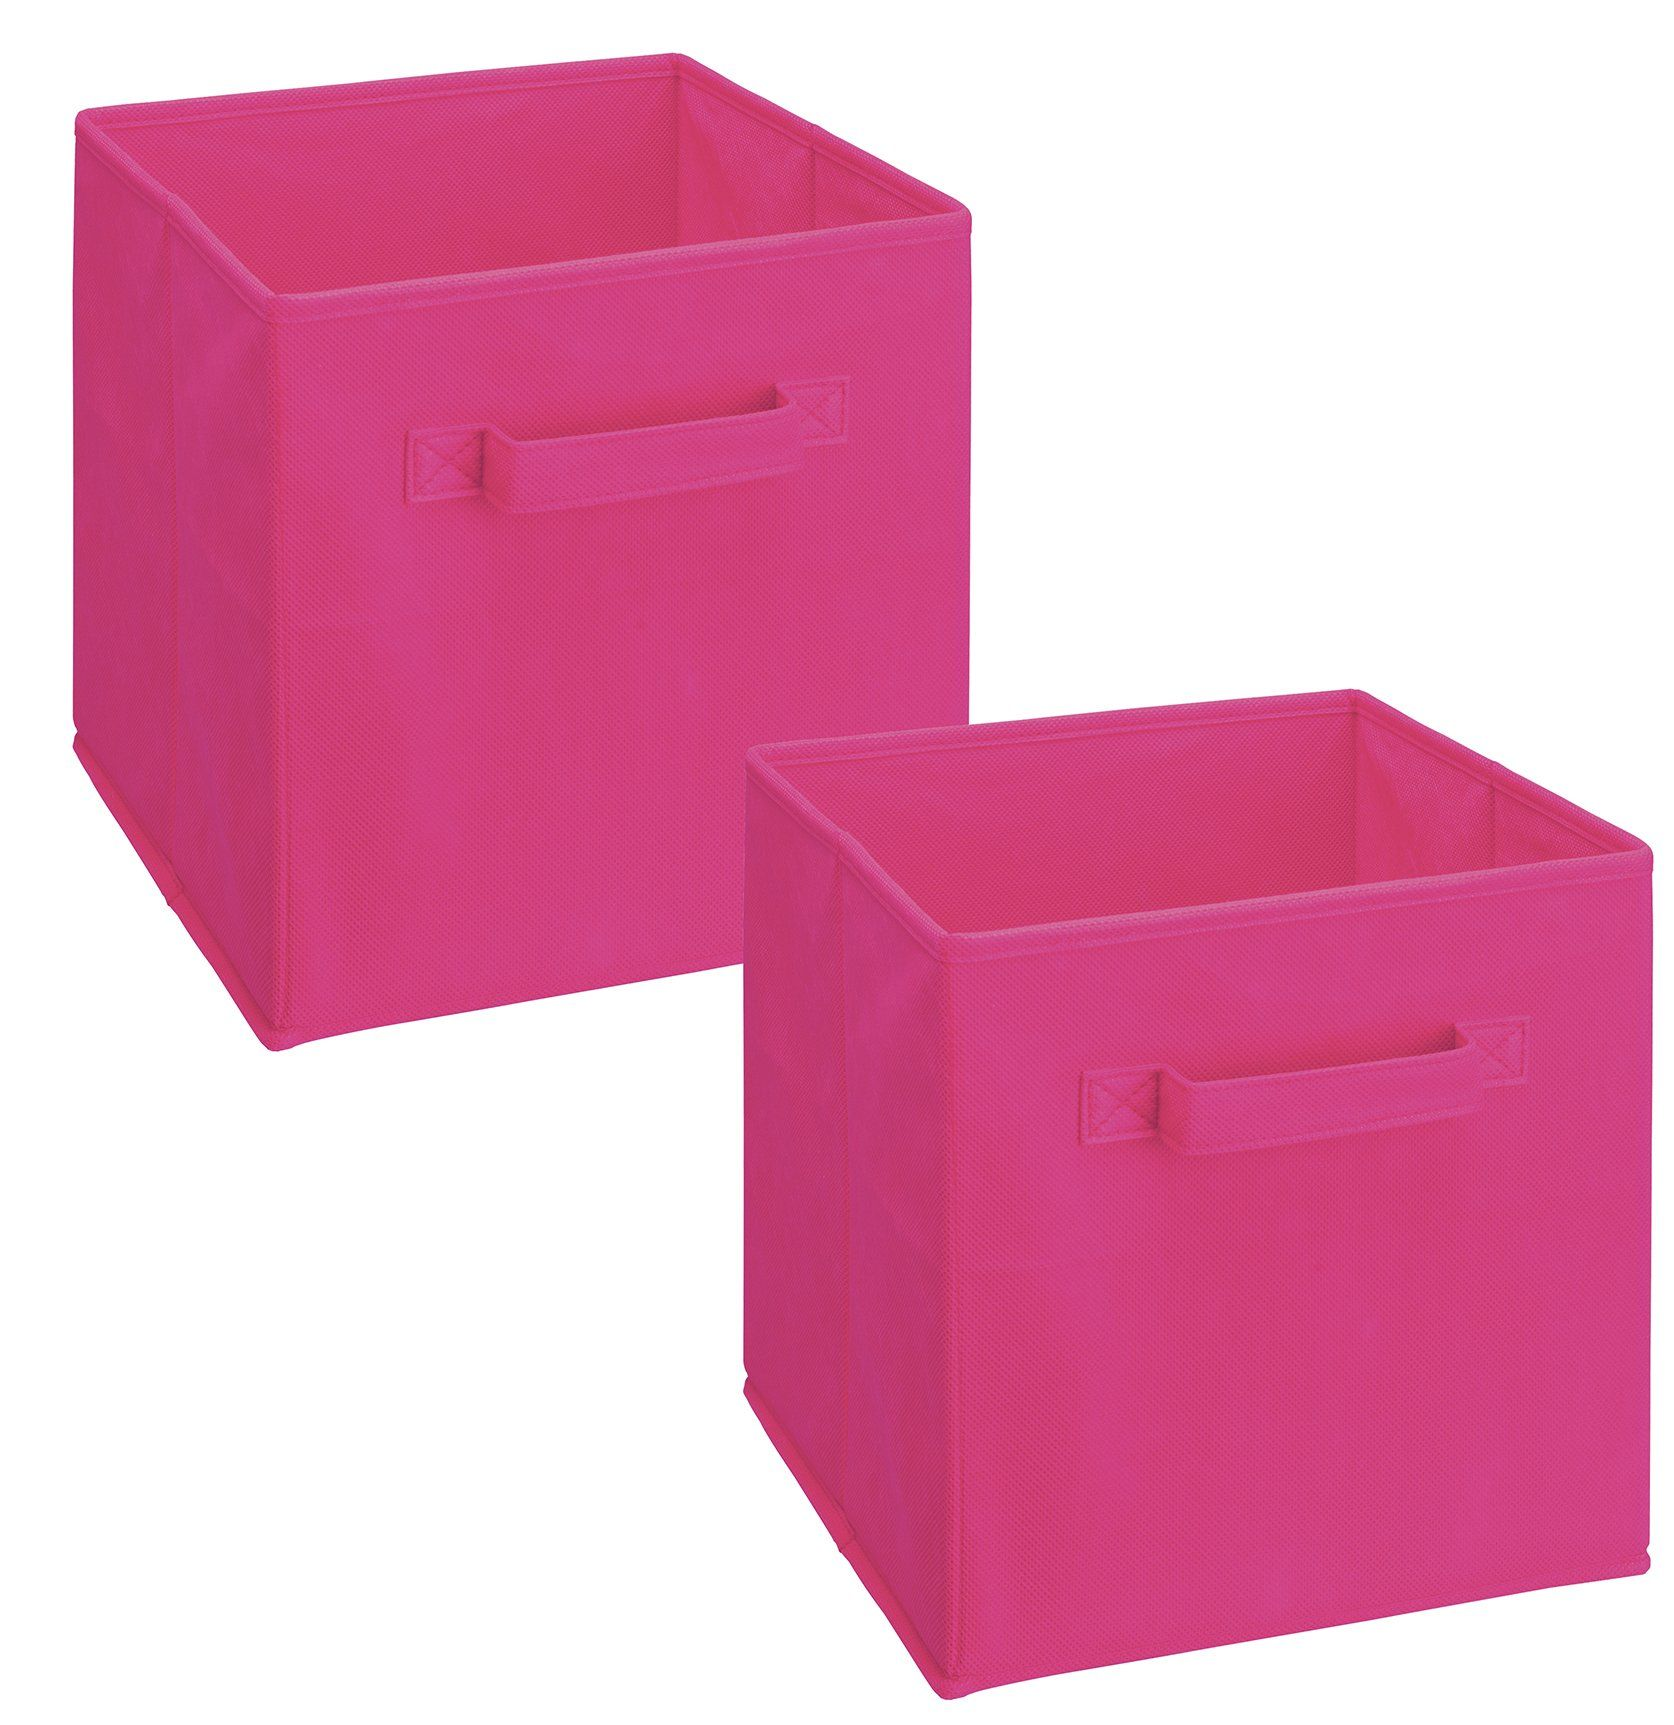 Amazon Com Closetmaid 5880 Cubeicals Fabric Drawer Fuchsia Closet Storage And Organization Systems Posters Fabric Bins Fabric Storage Bins Fabric Drawers